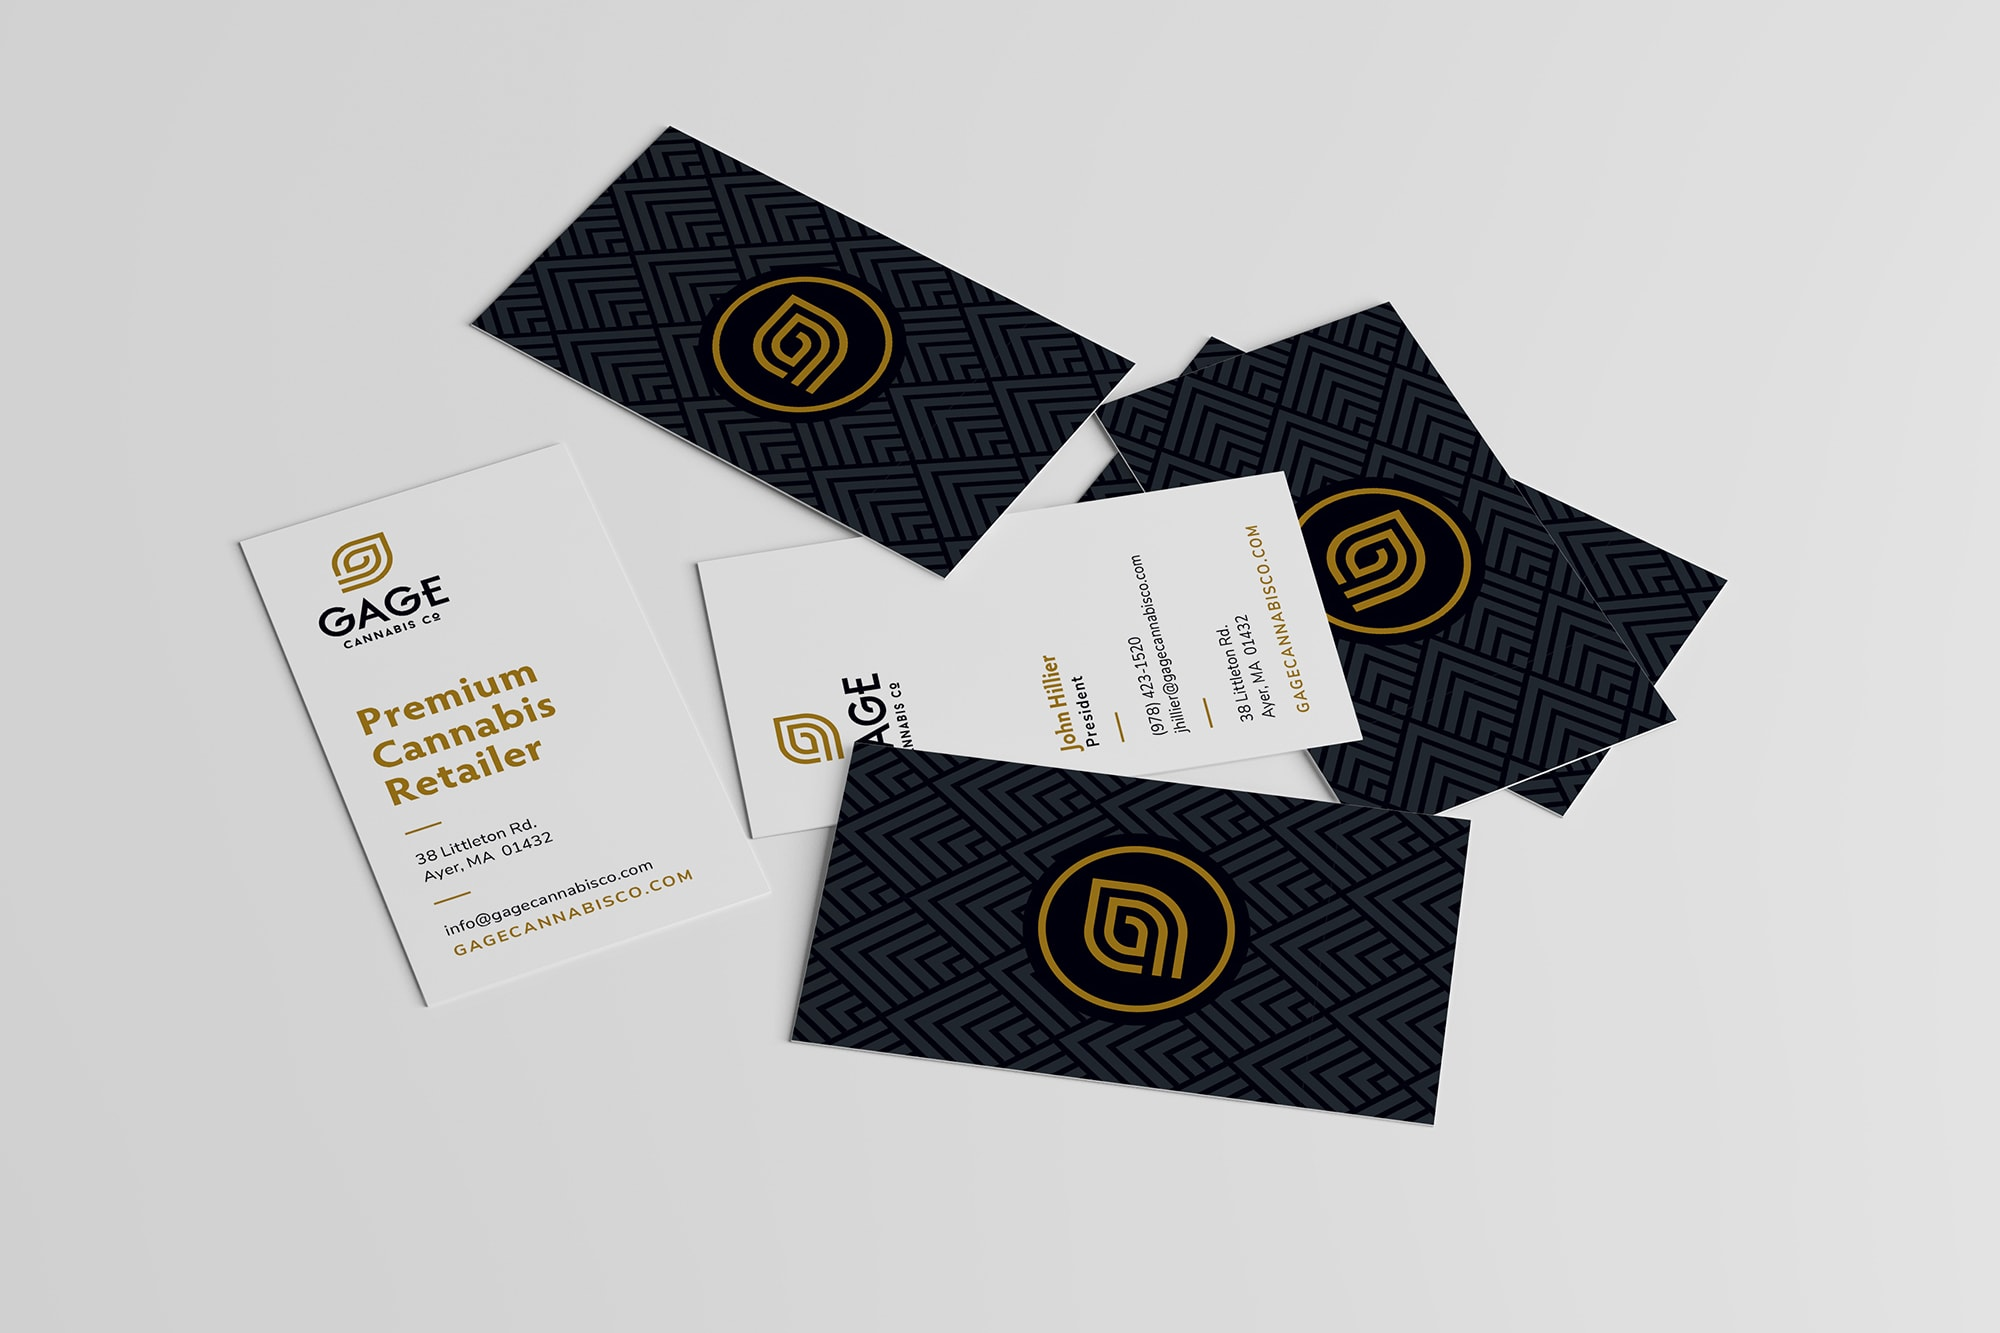 Dispensary business card design example